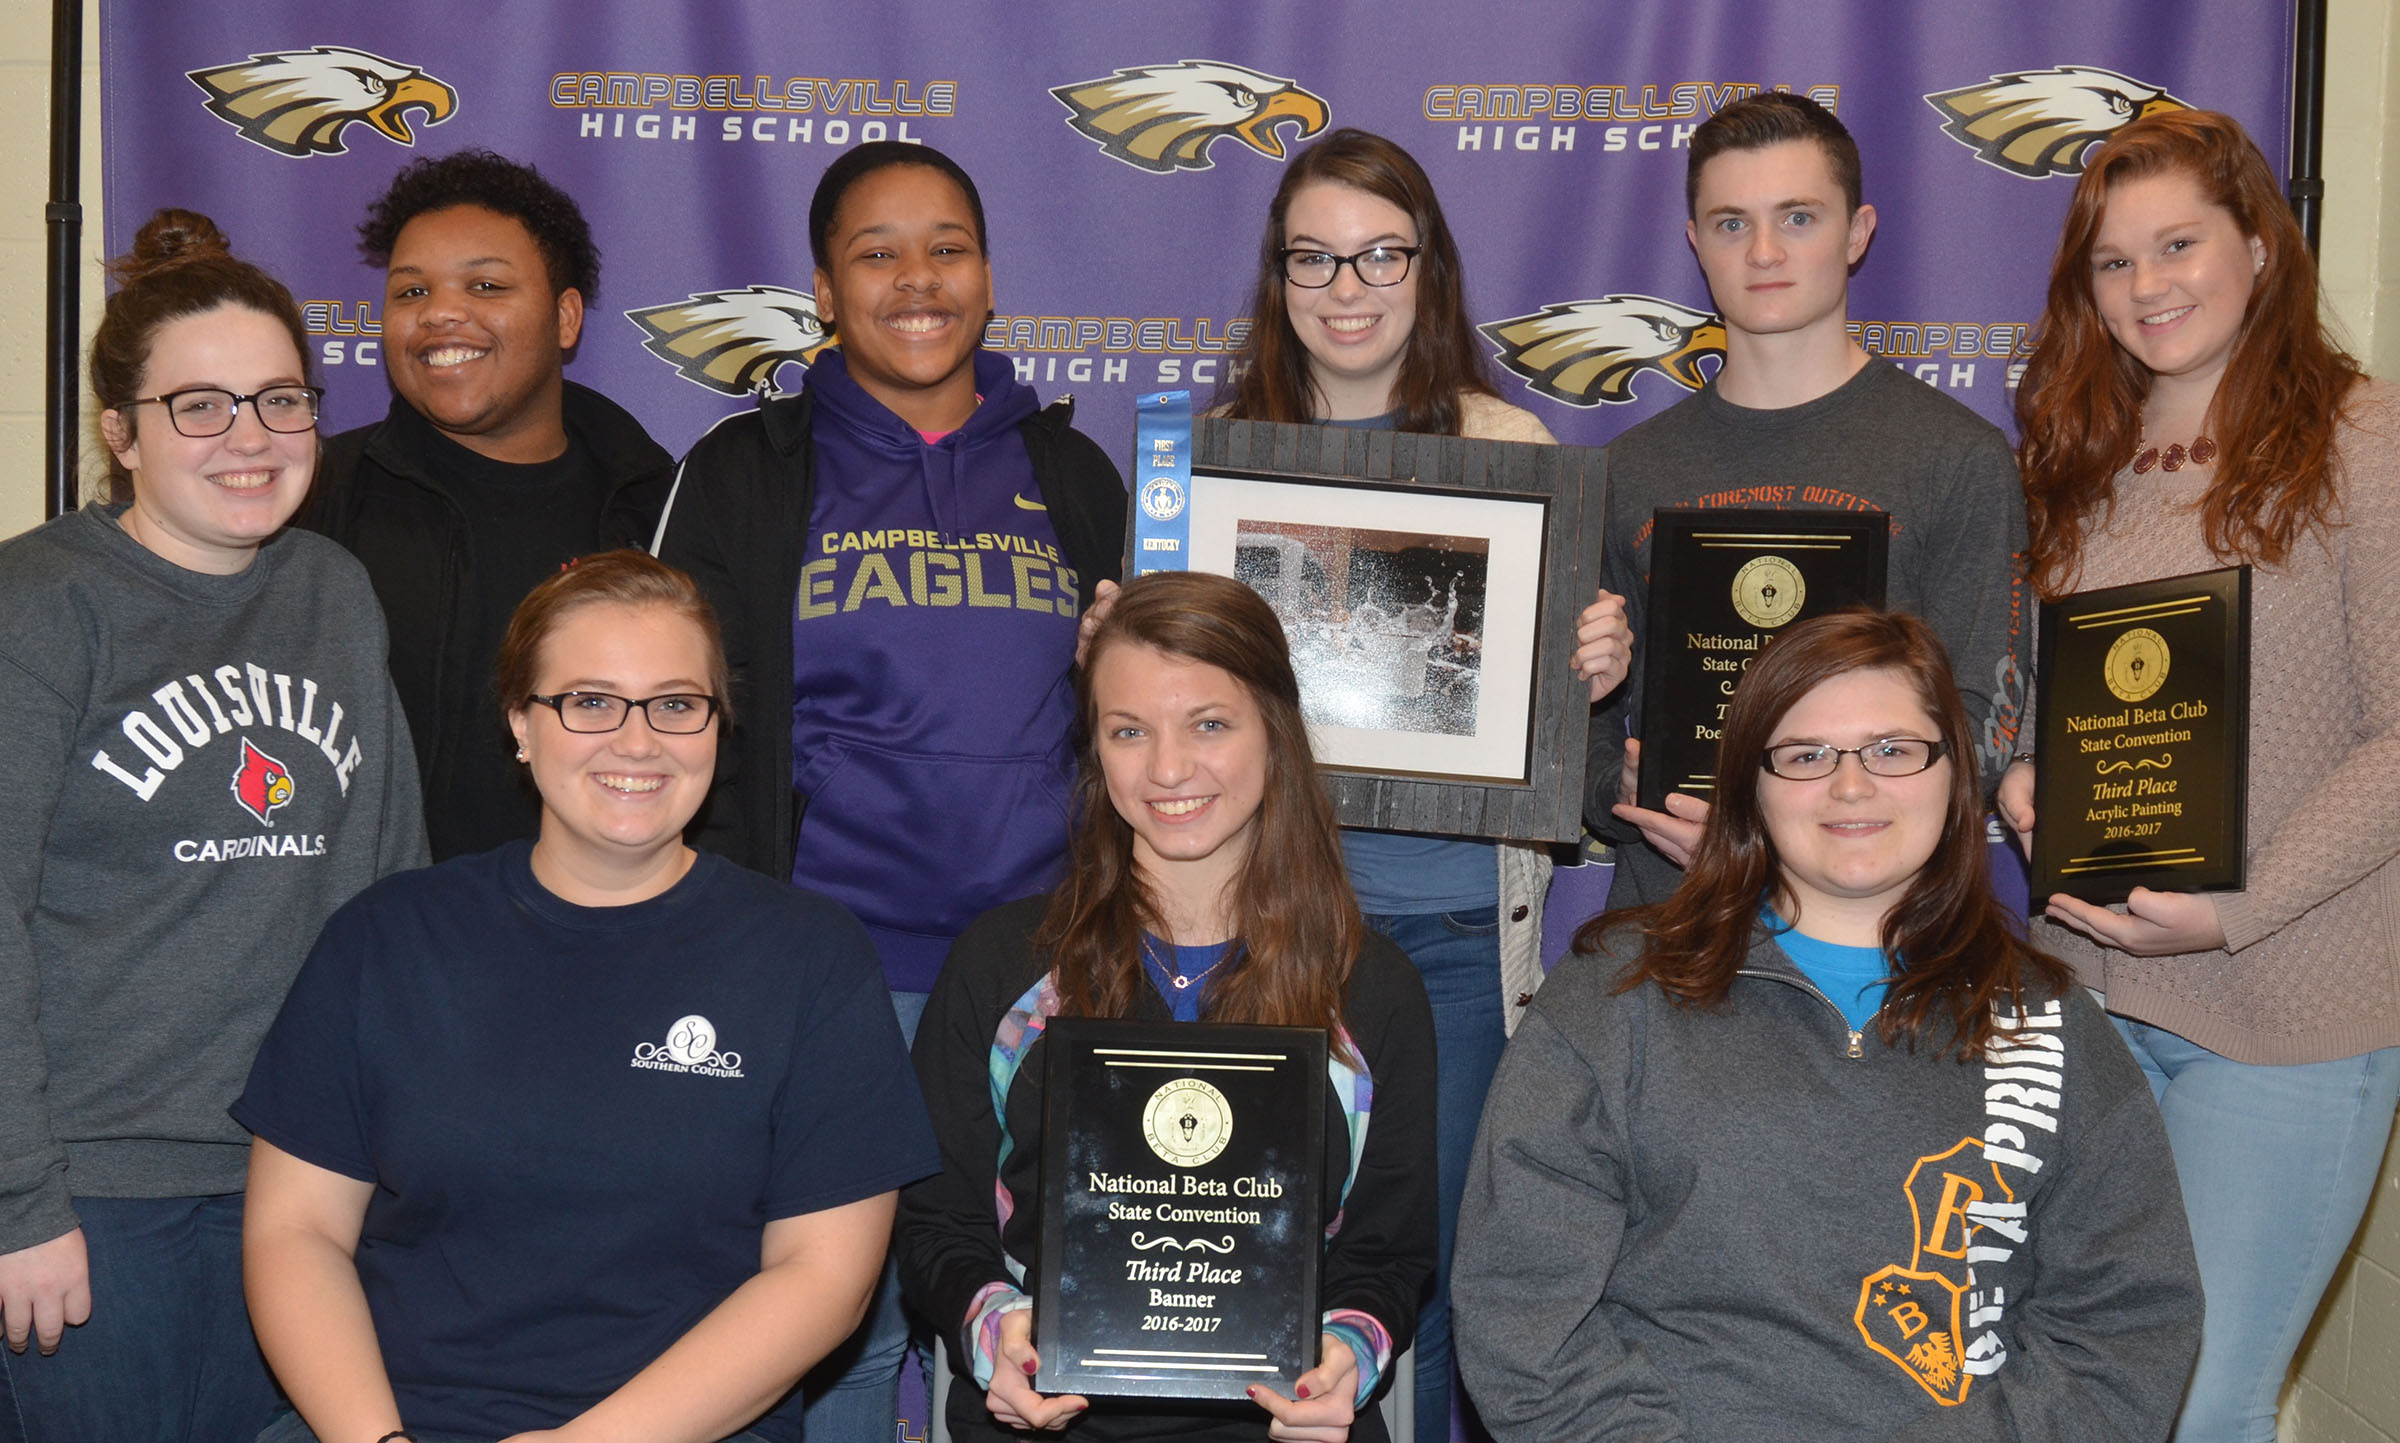 Campbellsville High School Beta Club members brought home several awards on Tuesday, Jan. 24, from this year's state convention. They now advance to the national Beta convention this summer. They are, from left, front, seniors Brenna Wethington, Caylie Blair and Vera Brown, who placed third in the banner competition. Back, juniors Caitlin Bright, Darius Wright and Kayla Young, who were in the Top 10 in the spotlight on service category; senior Laura Lamb, who received first place in the photography category; junior Bryce Richardson, who received third place in poetry; and senior Mallory Haley, who received third place in on-site acrylic painting.